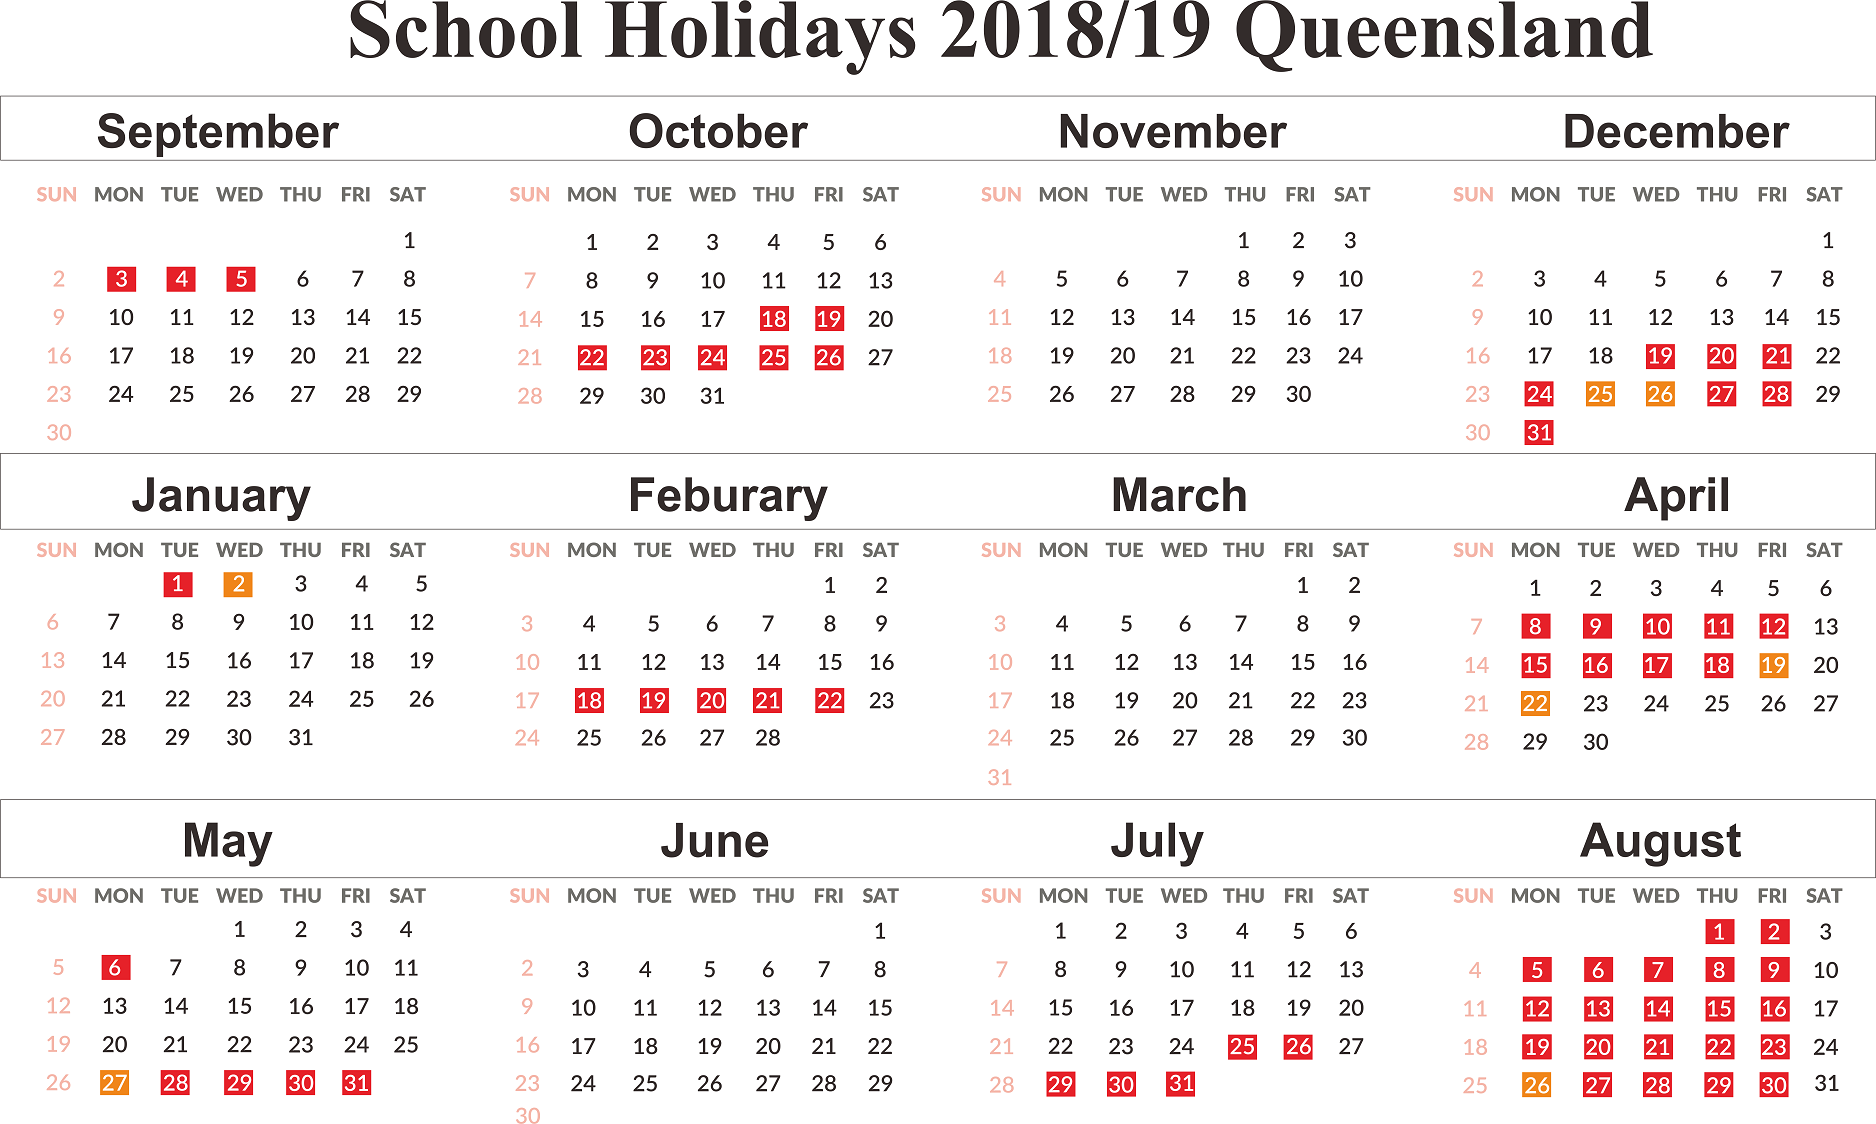 2019 Qld School Year Calendar With Free Download Holidays QLD Queensland